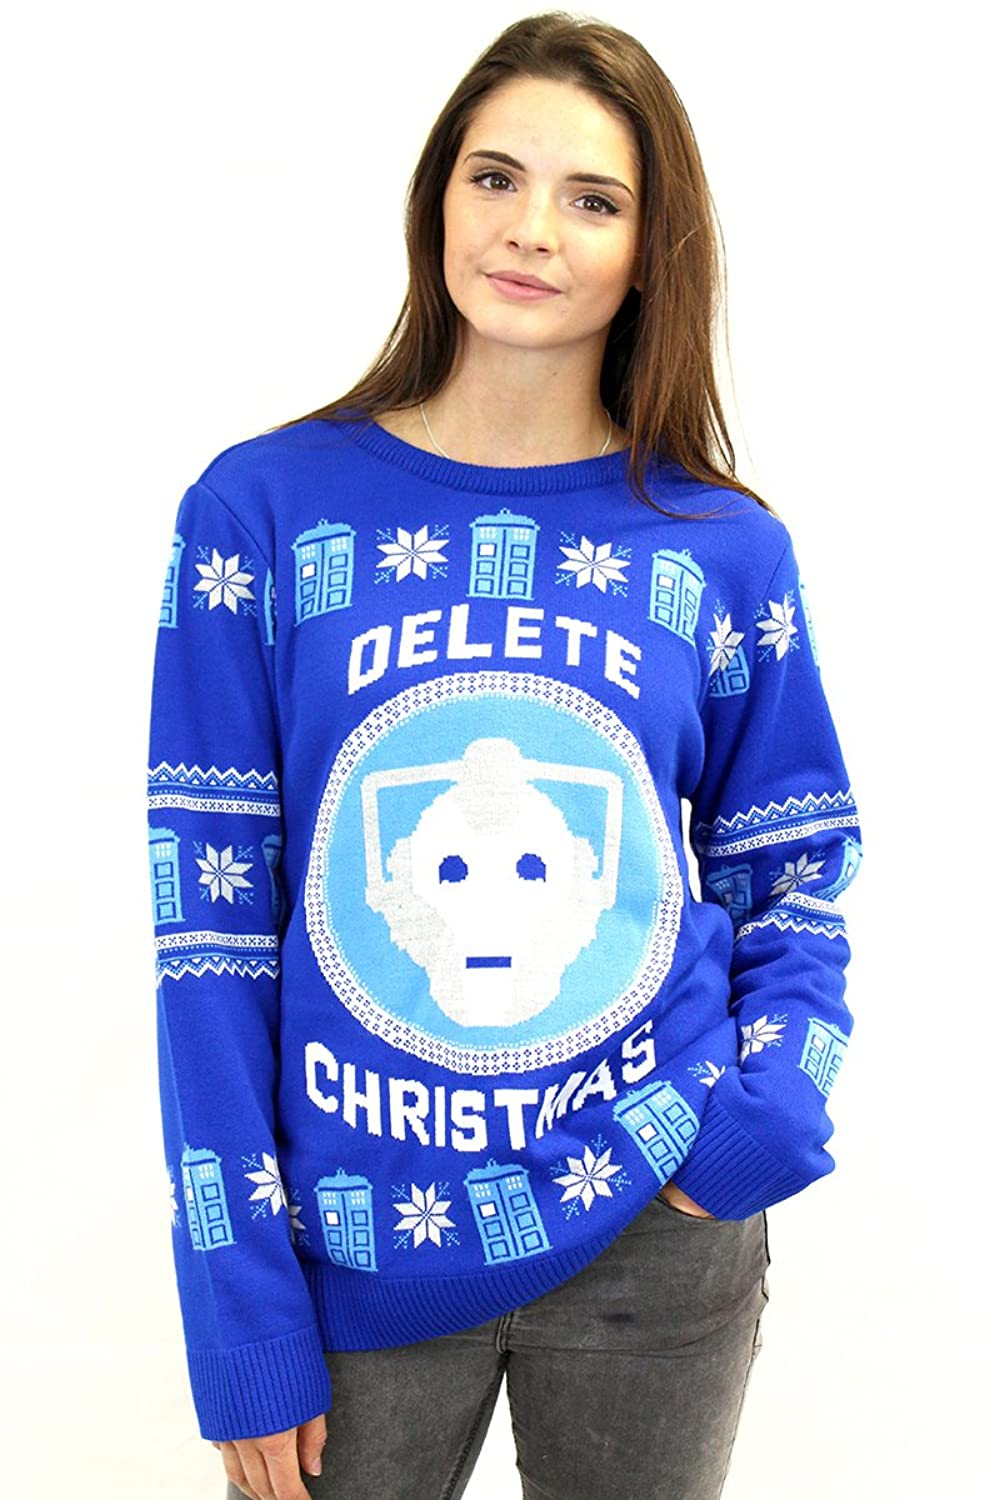 Dr who christmas sweater